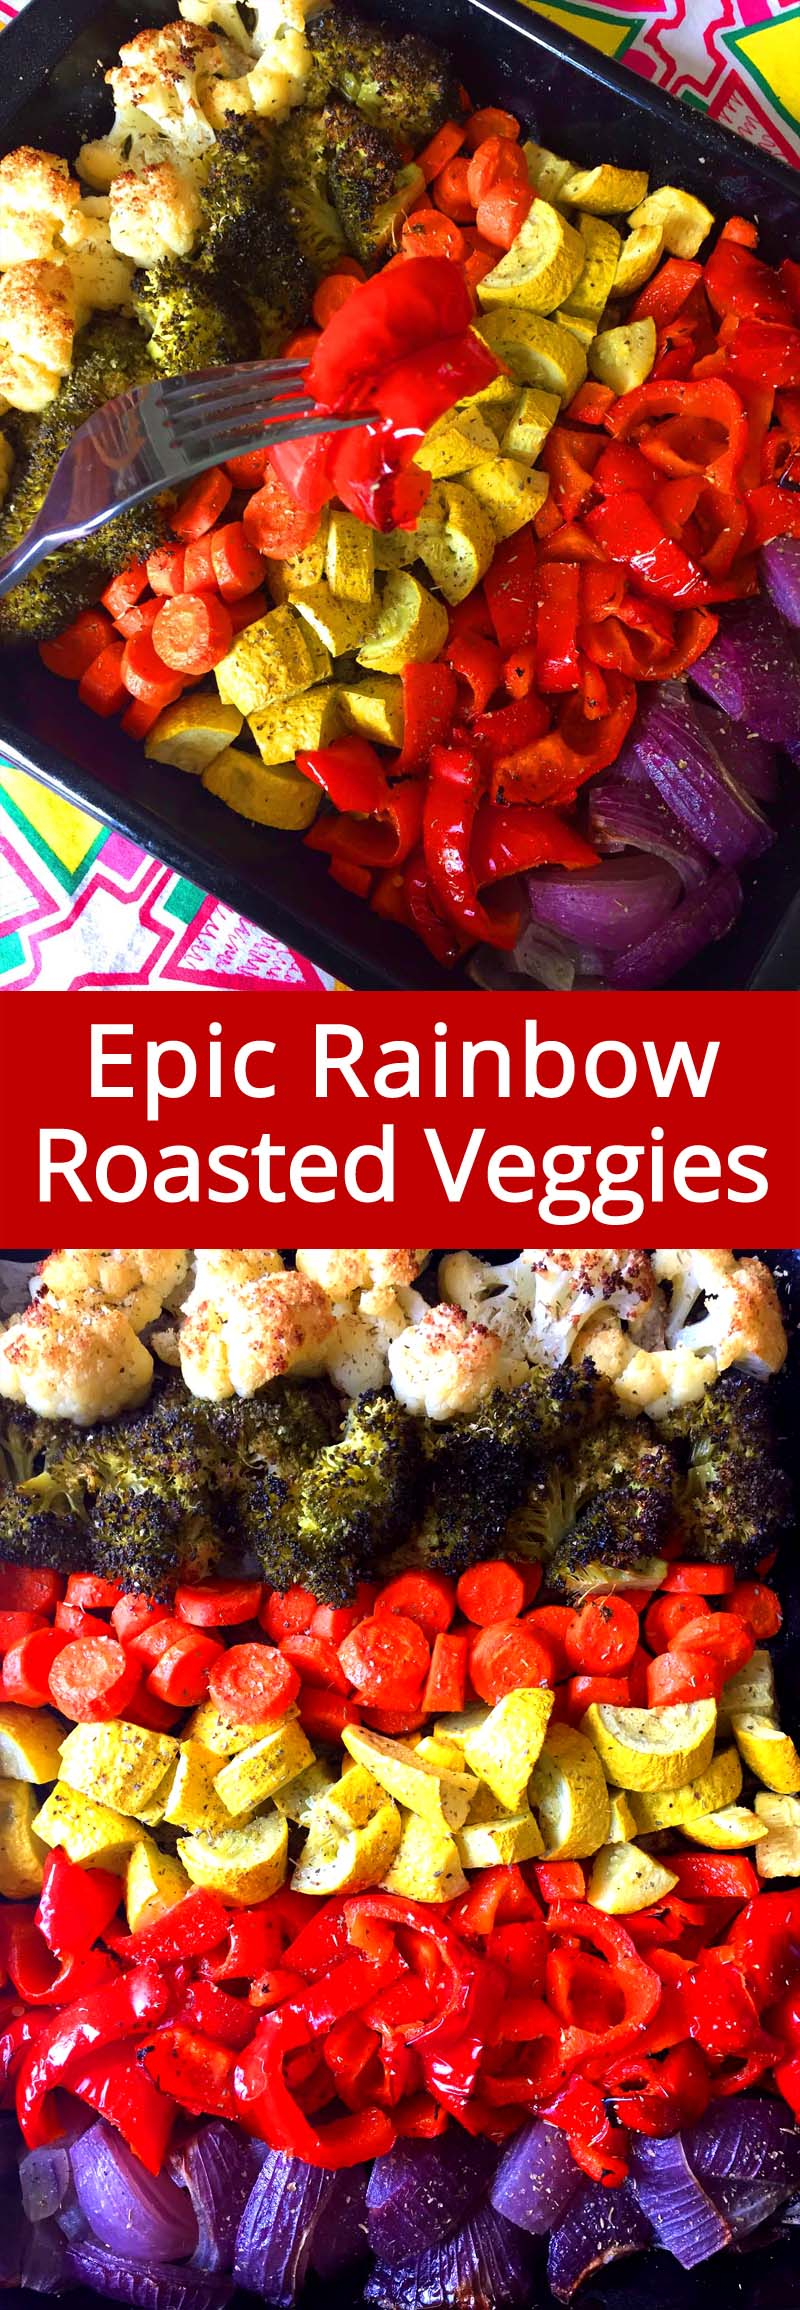 What a great idea! These rainbow roasted vegetables are epic! Super easy to make, so colorful, healthy and yummy! Everyone loves oven roasted rainbow veggies!